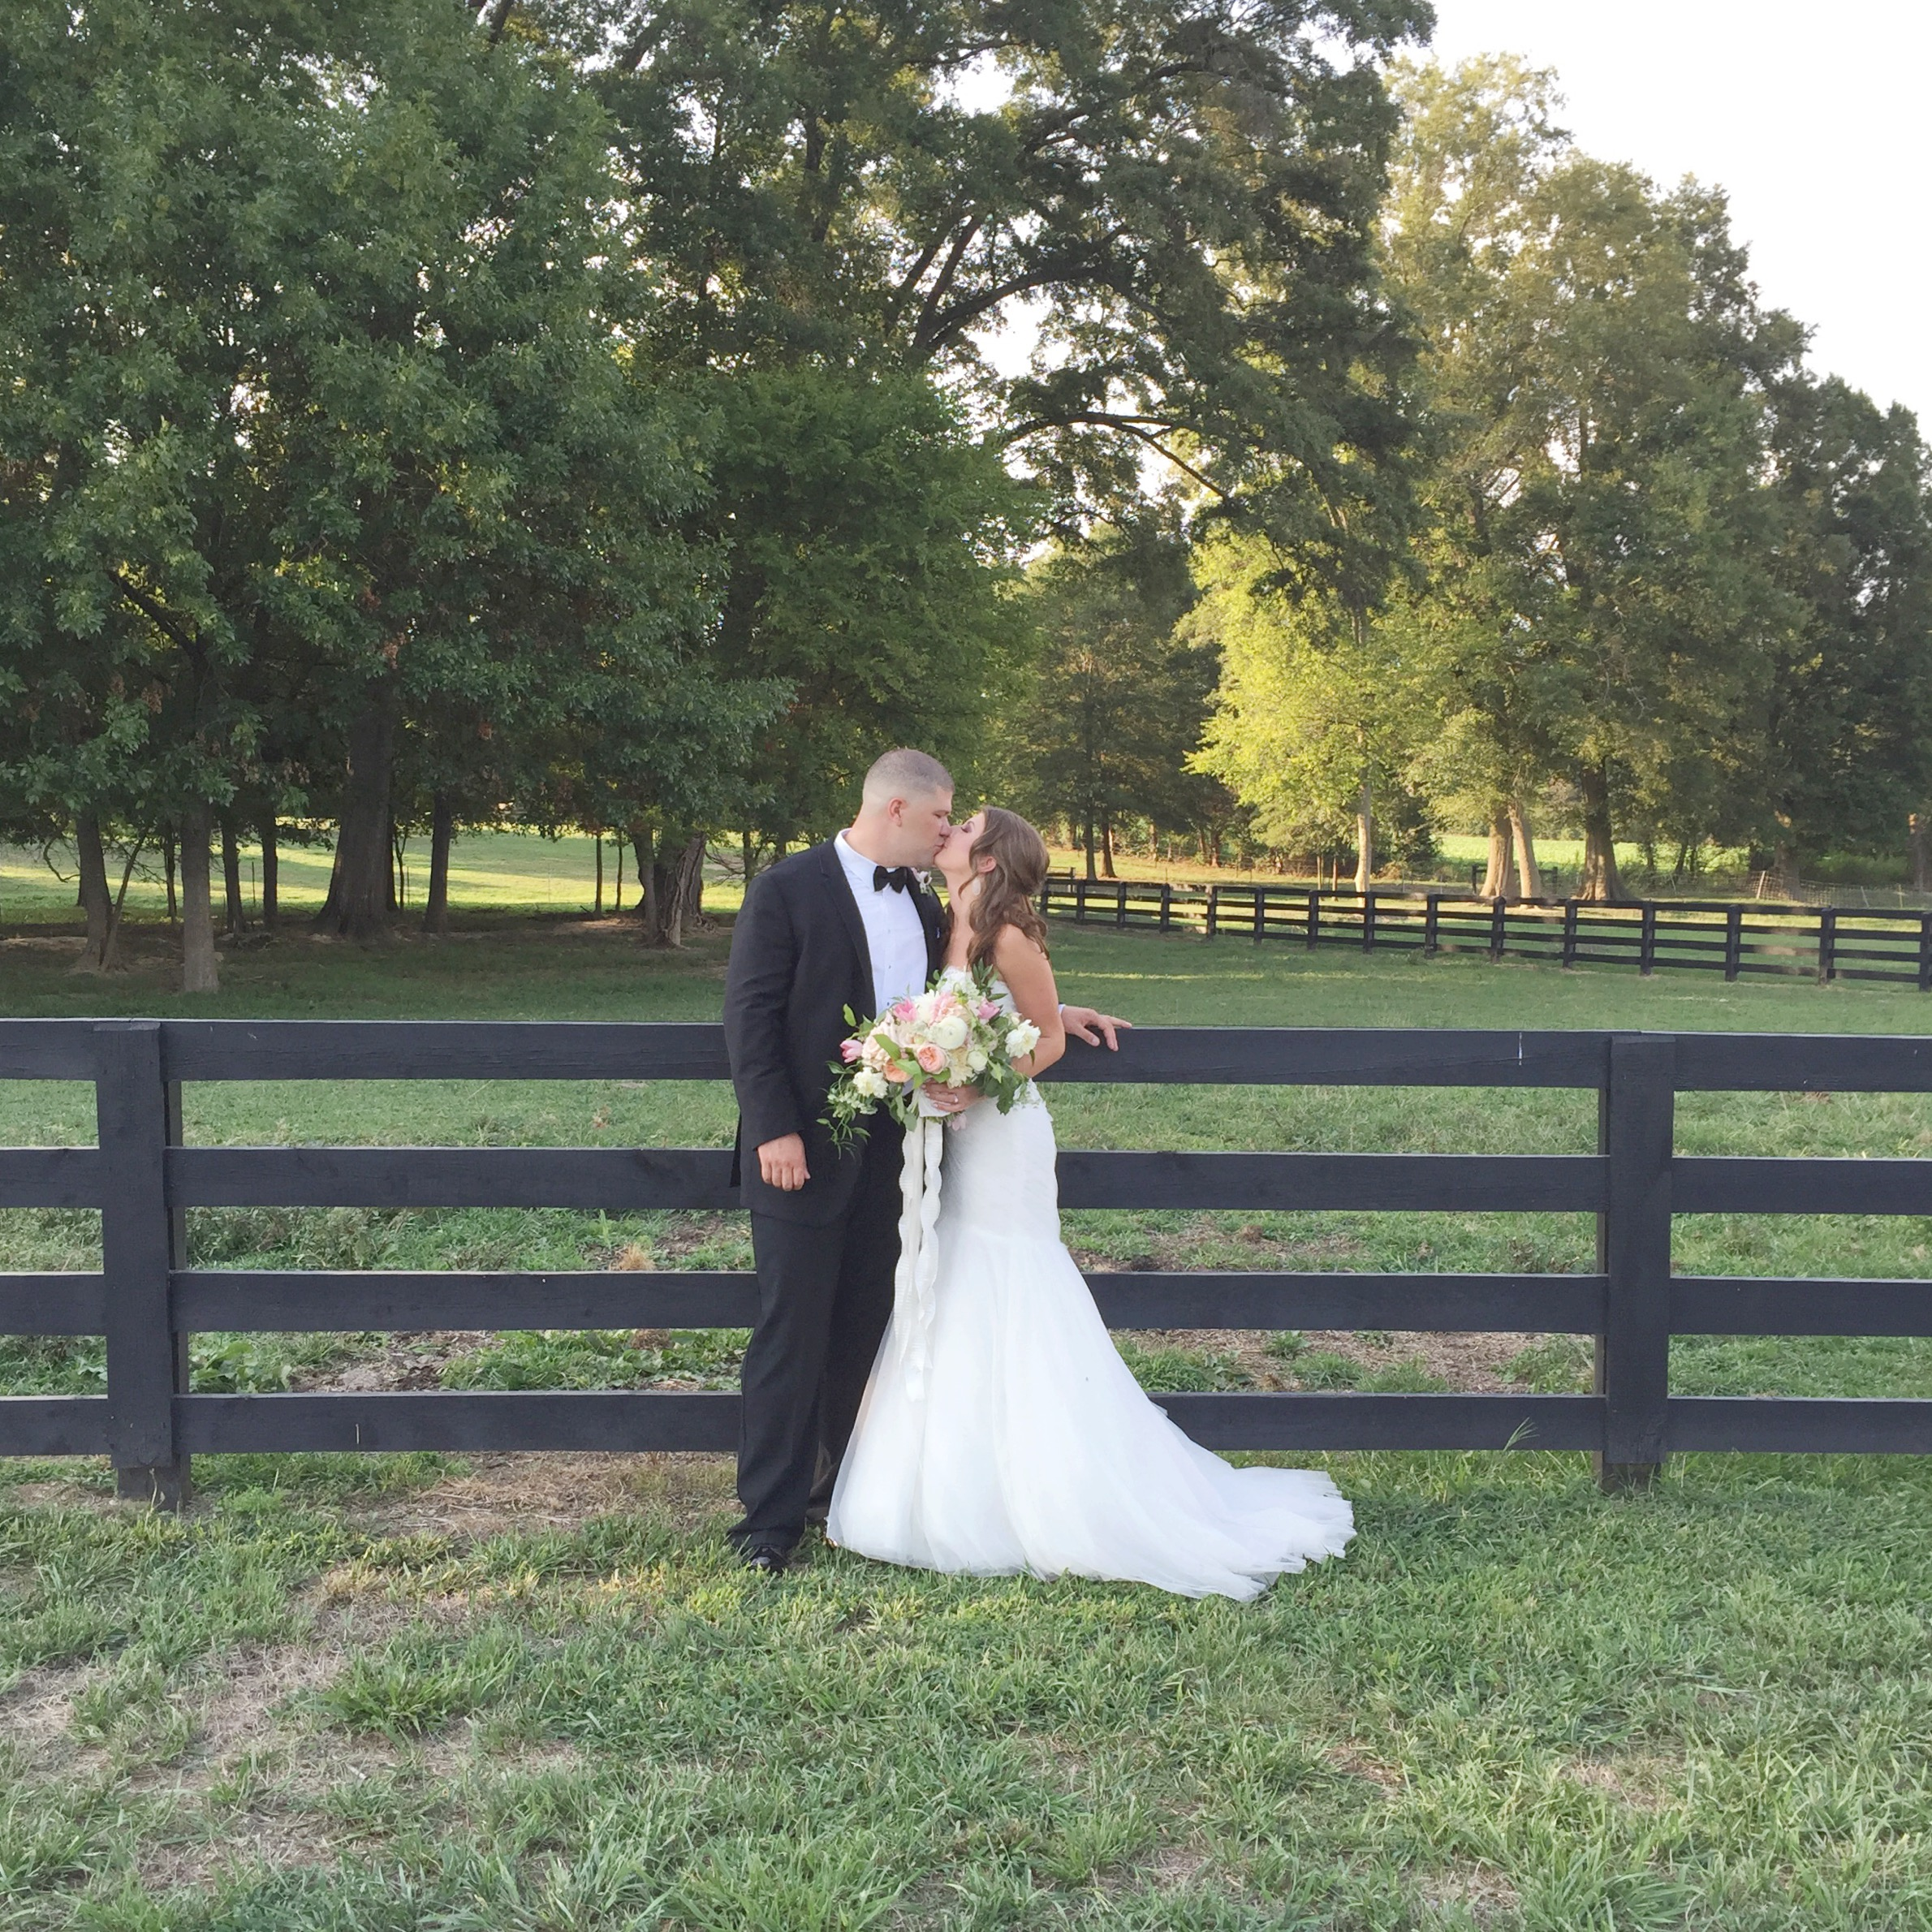 Morning Glory Farm Wedding - The Graceful Host - Charlotte, NC Weddings